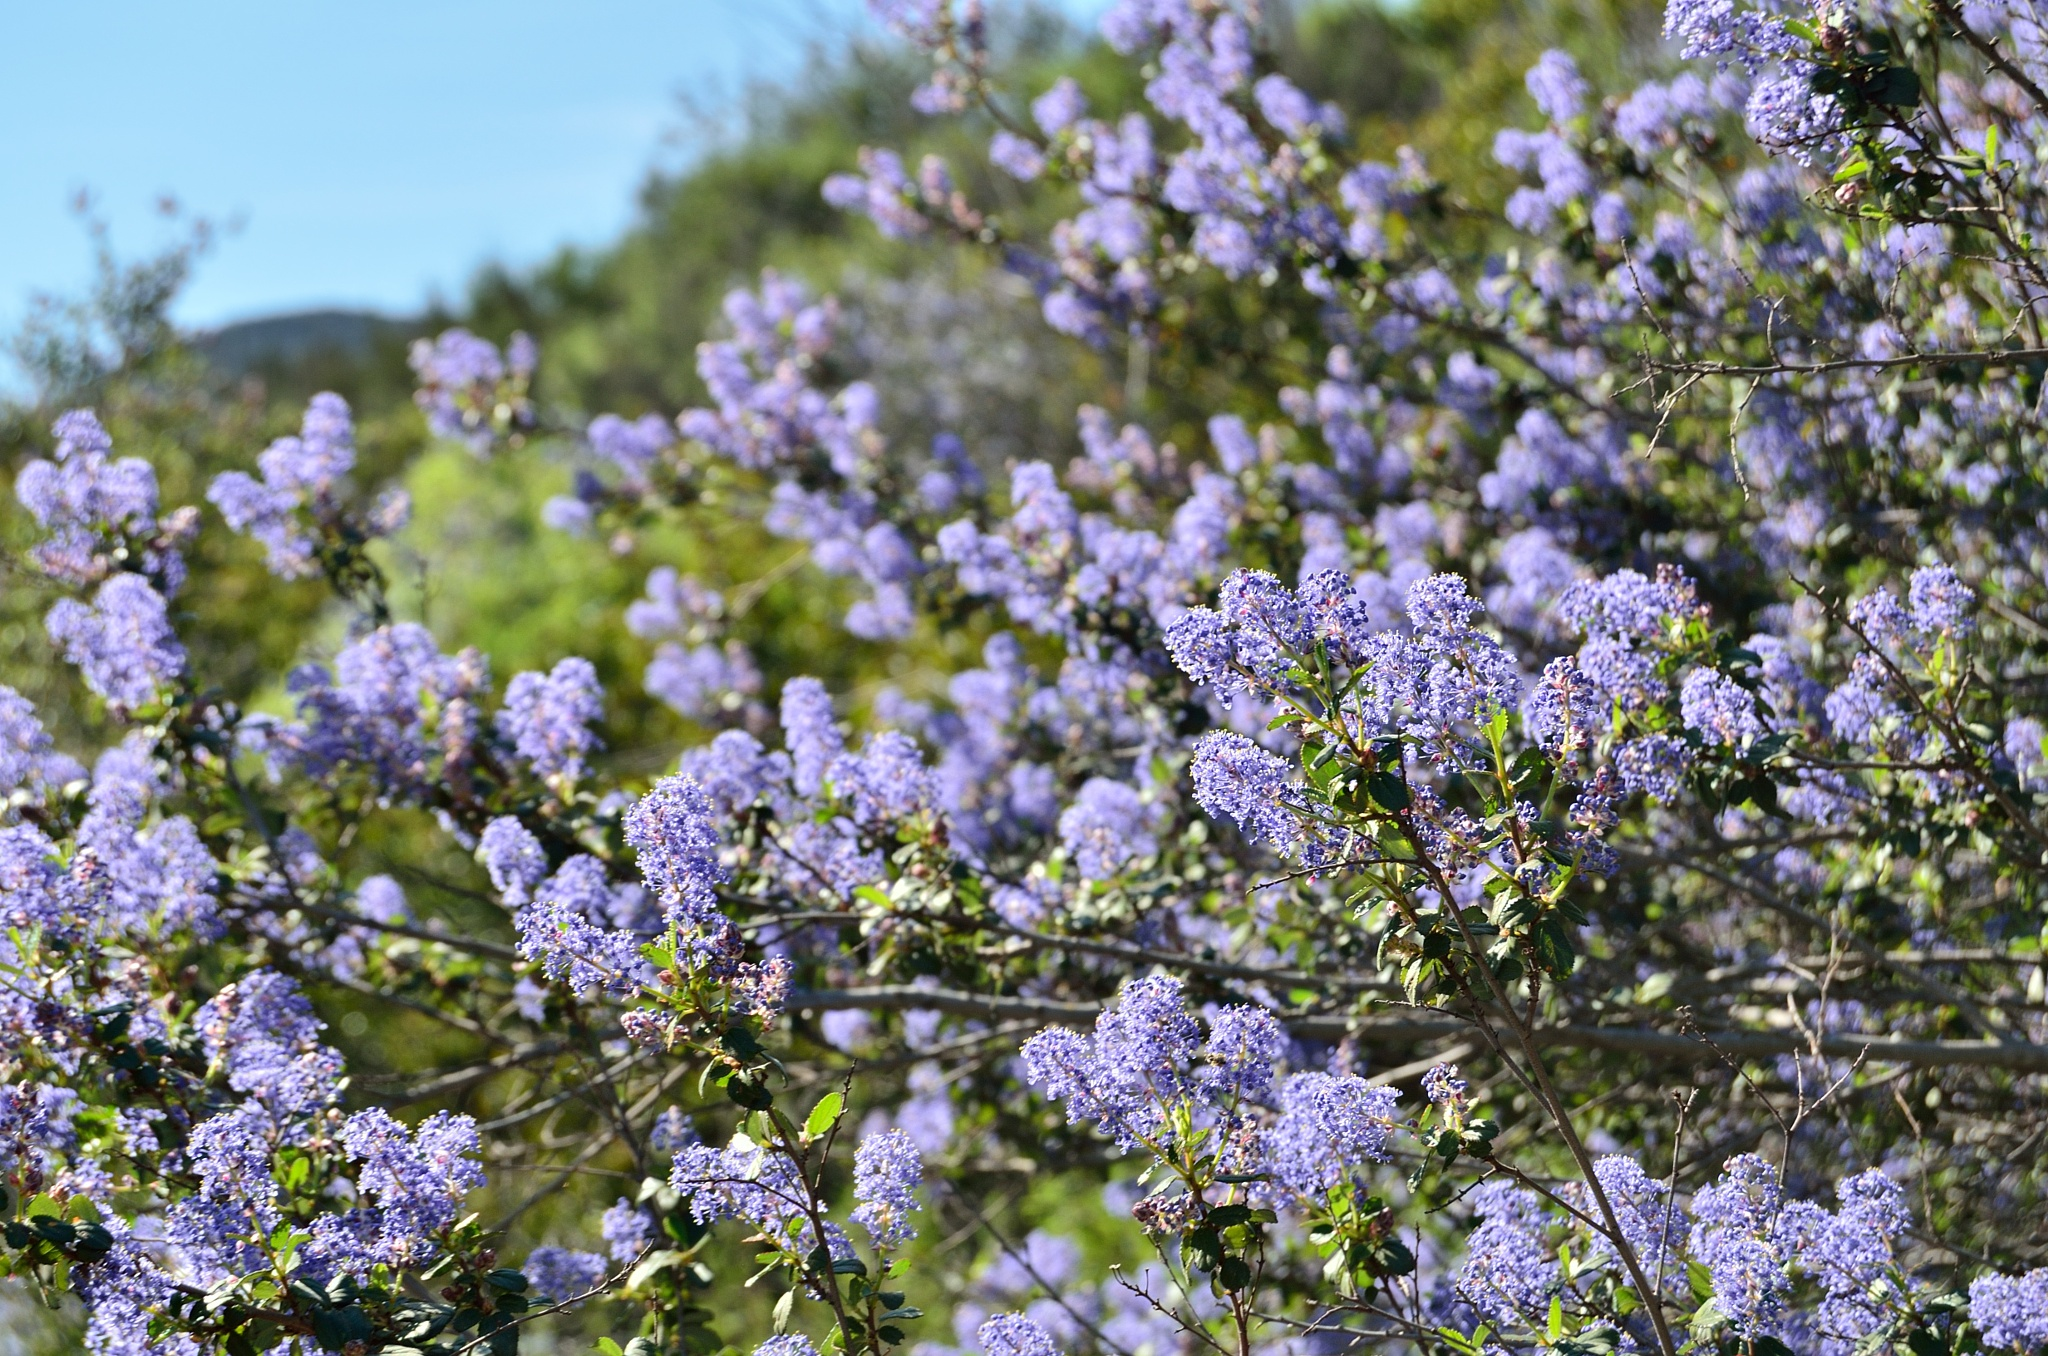 Flowers on Mission Trails by Andrew Fuchs